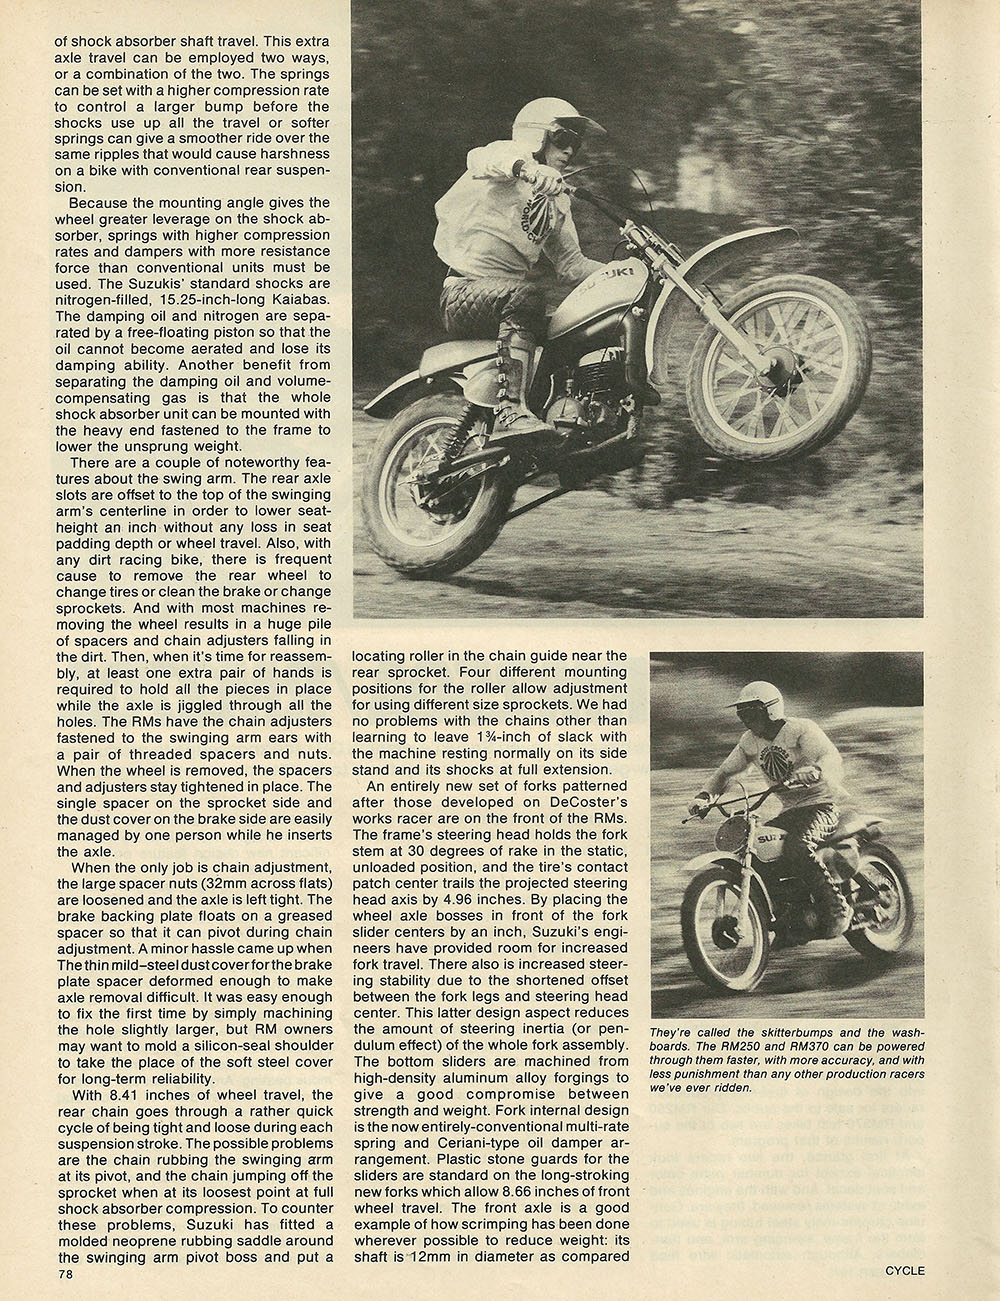 1975 Suzuki RM250 and RM370 off road test 2.JPG